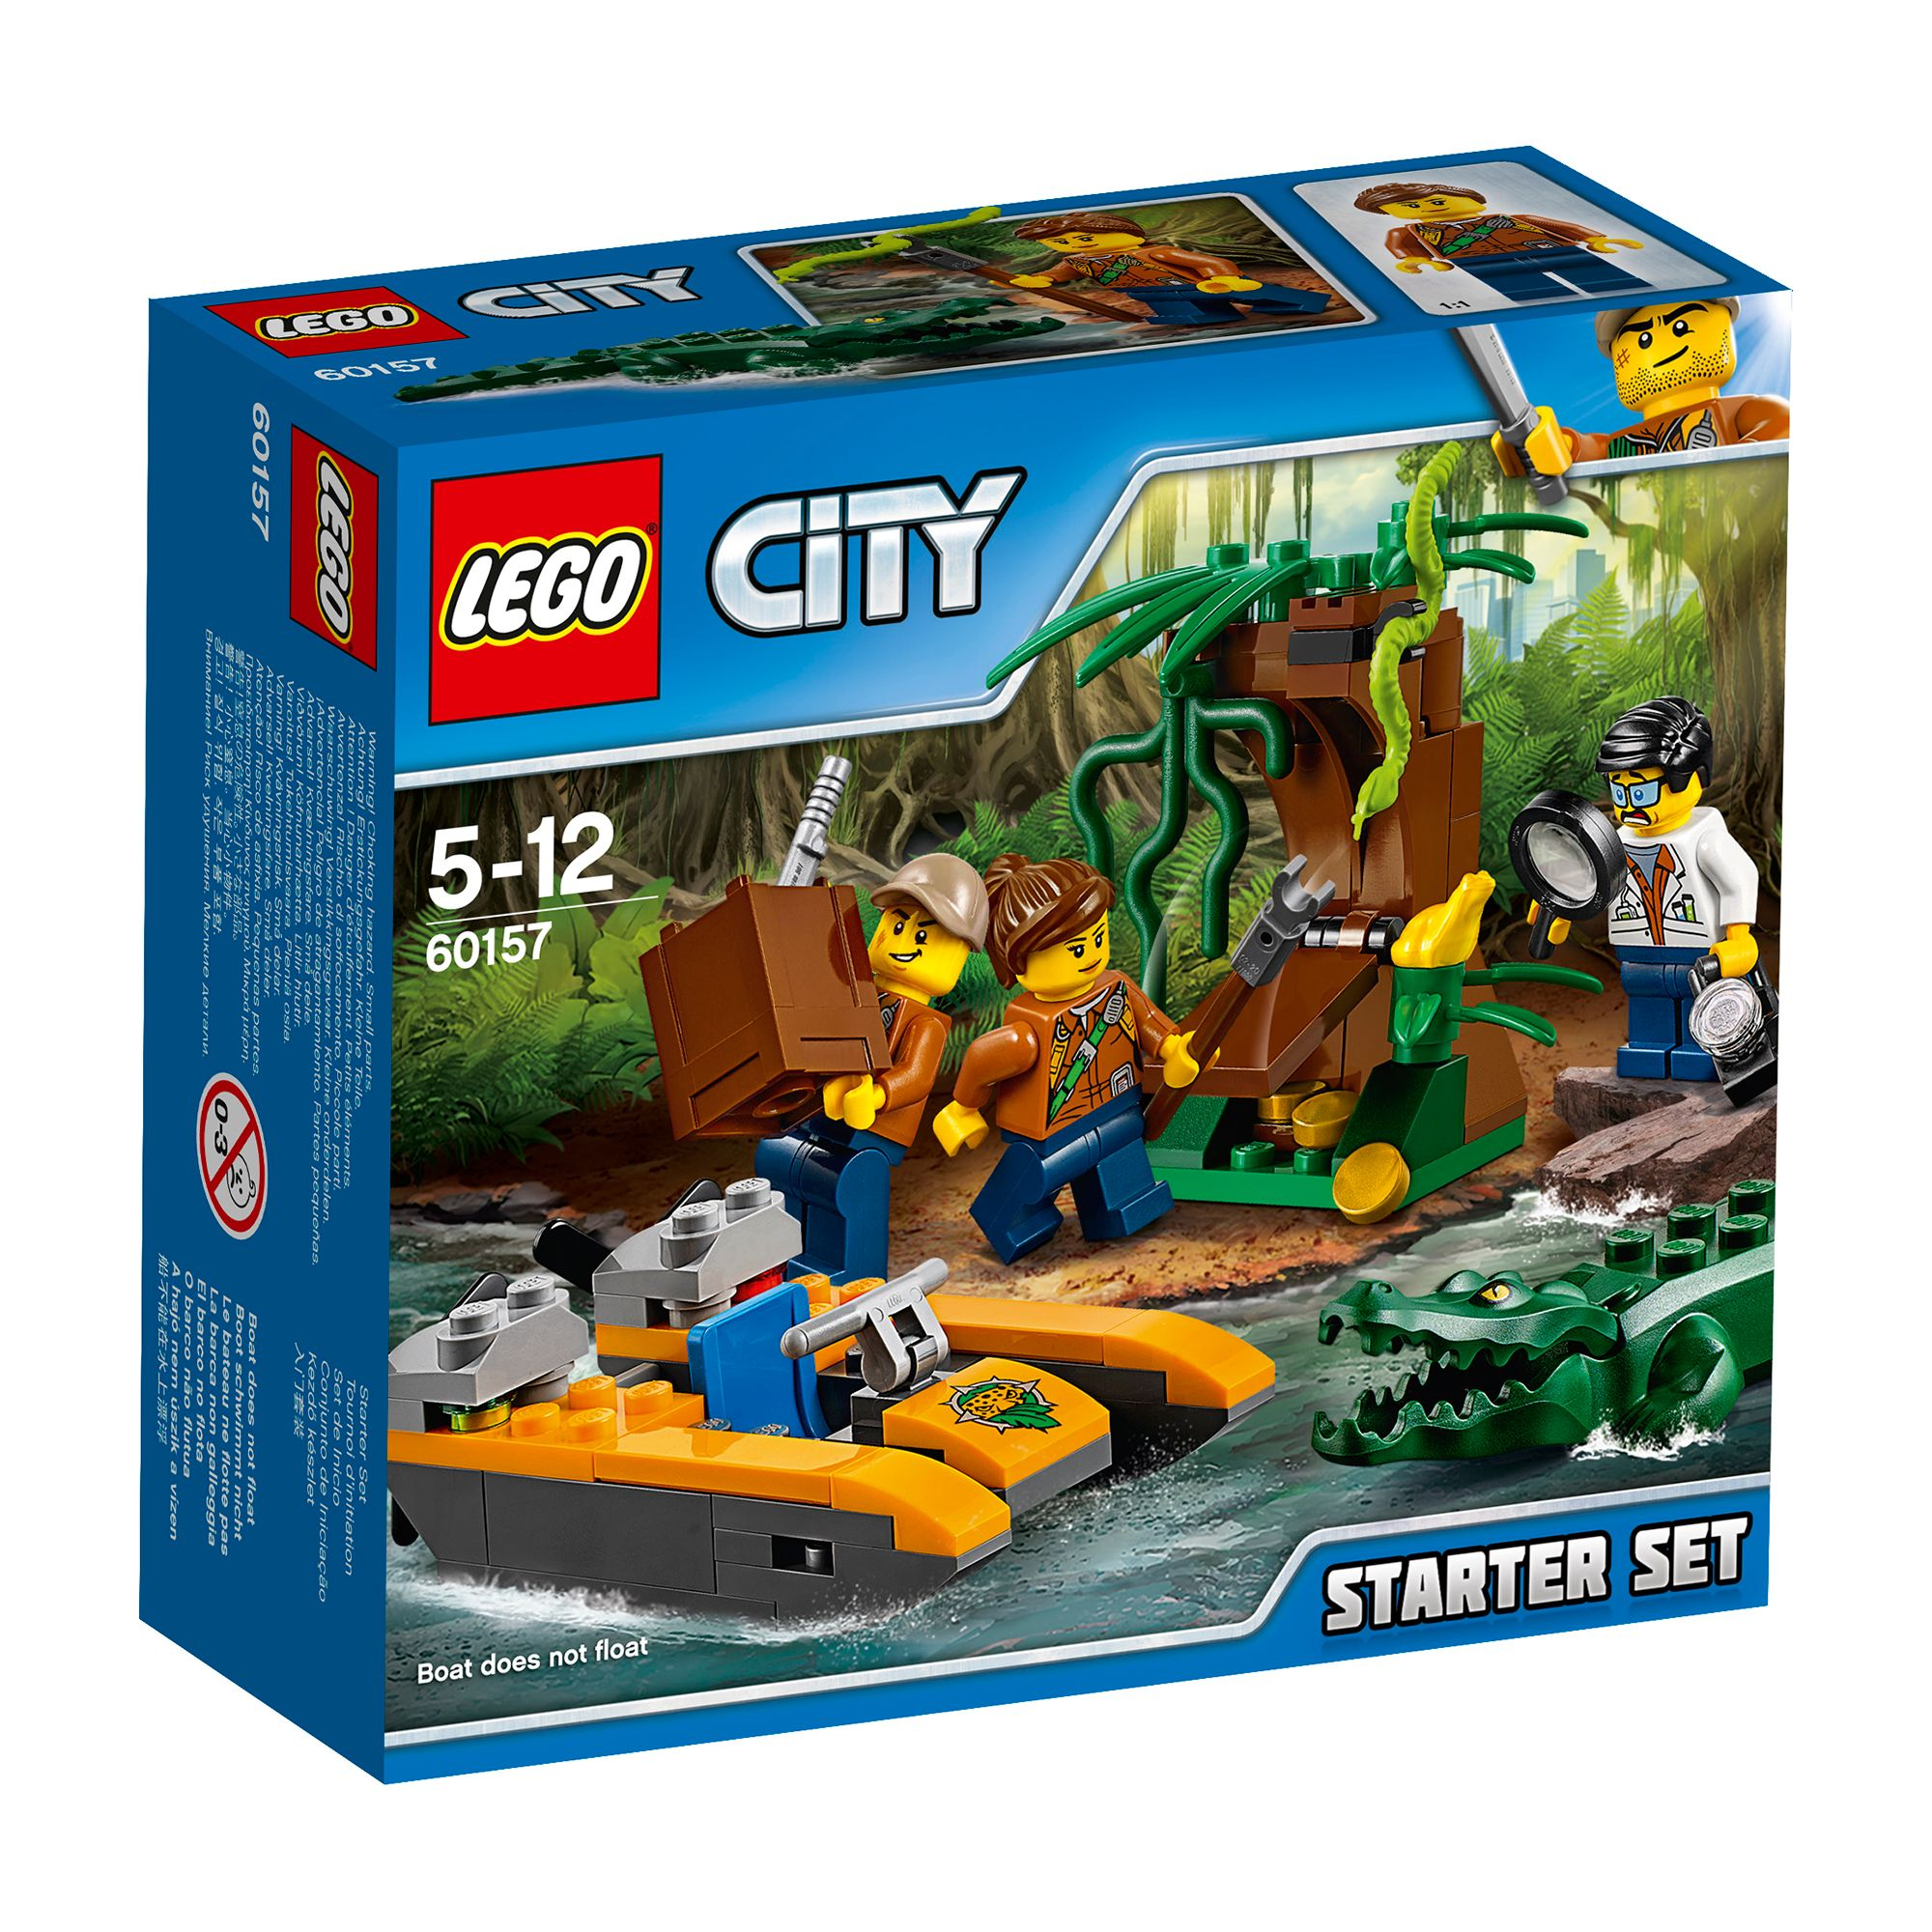 Image of Lego City Jungle Starter Set 60157